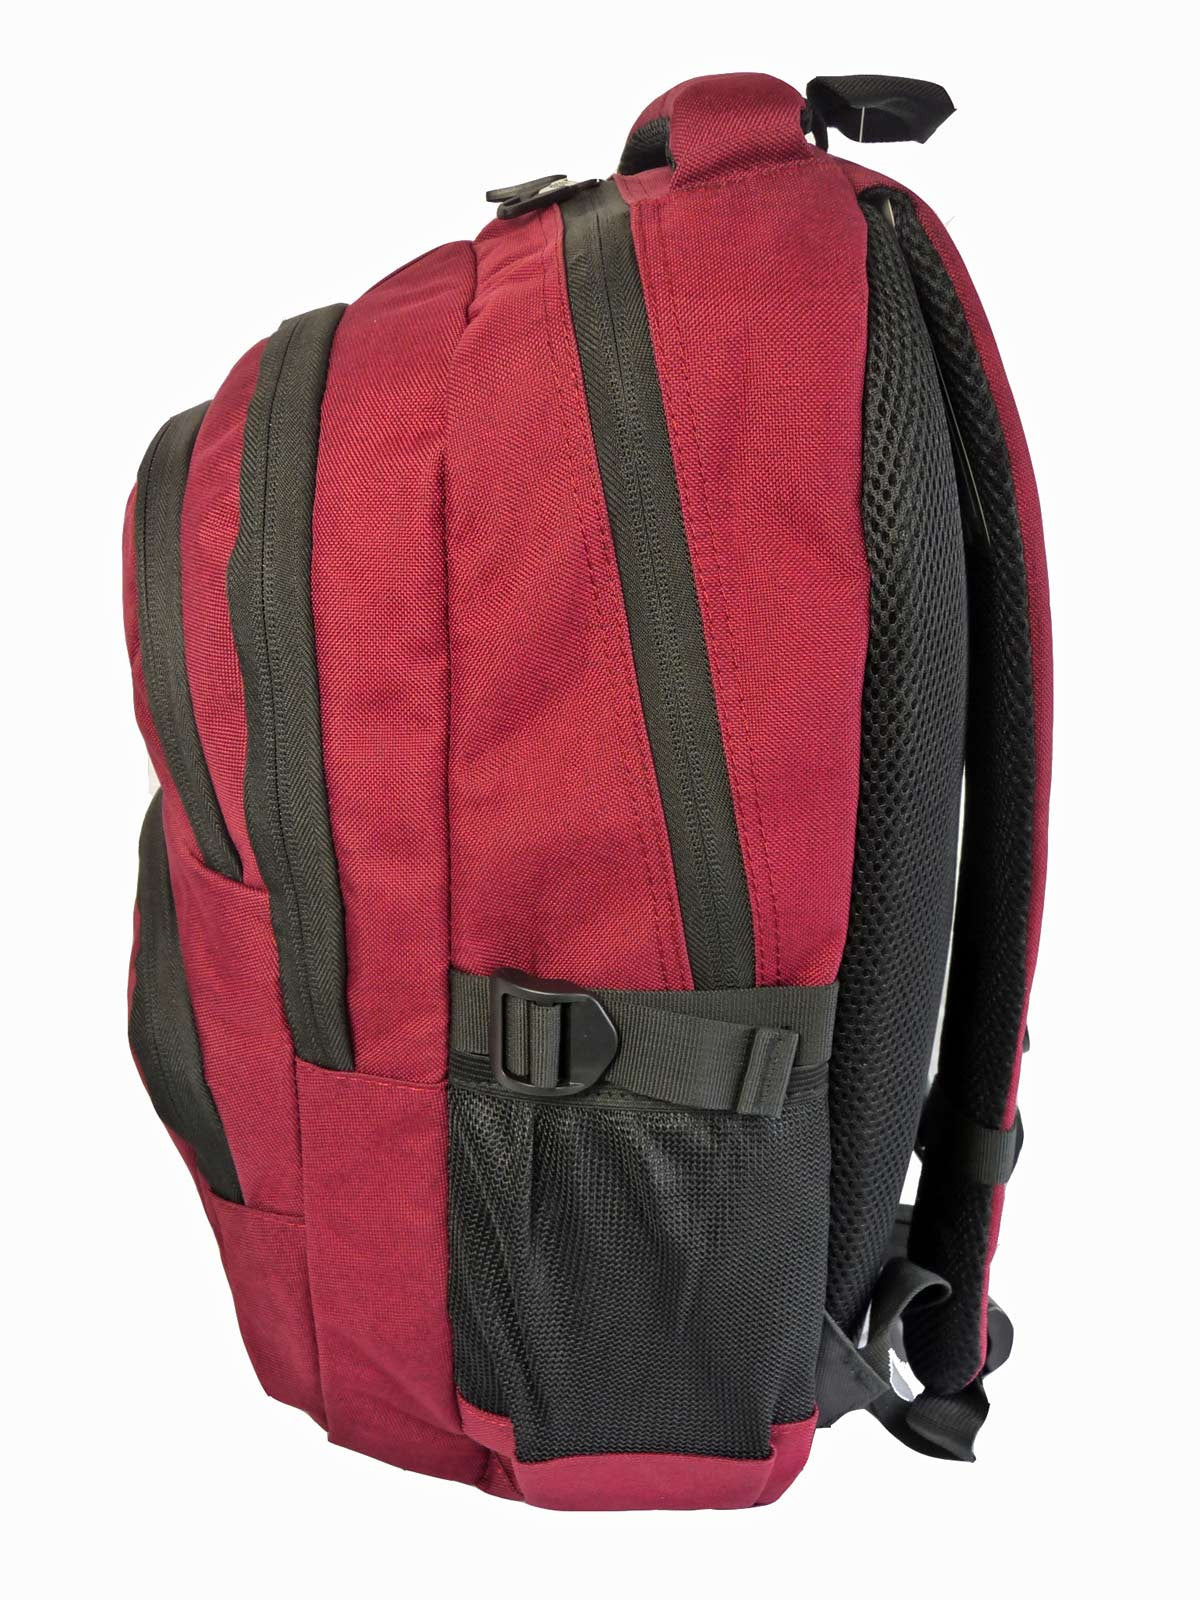 Laptop Macbook Backpack Rucksack Bag RL43Bu S Side View